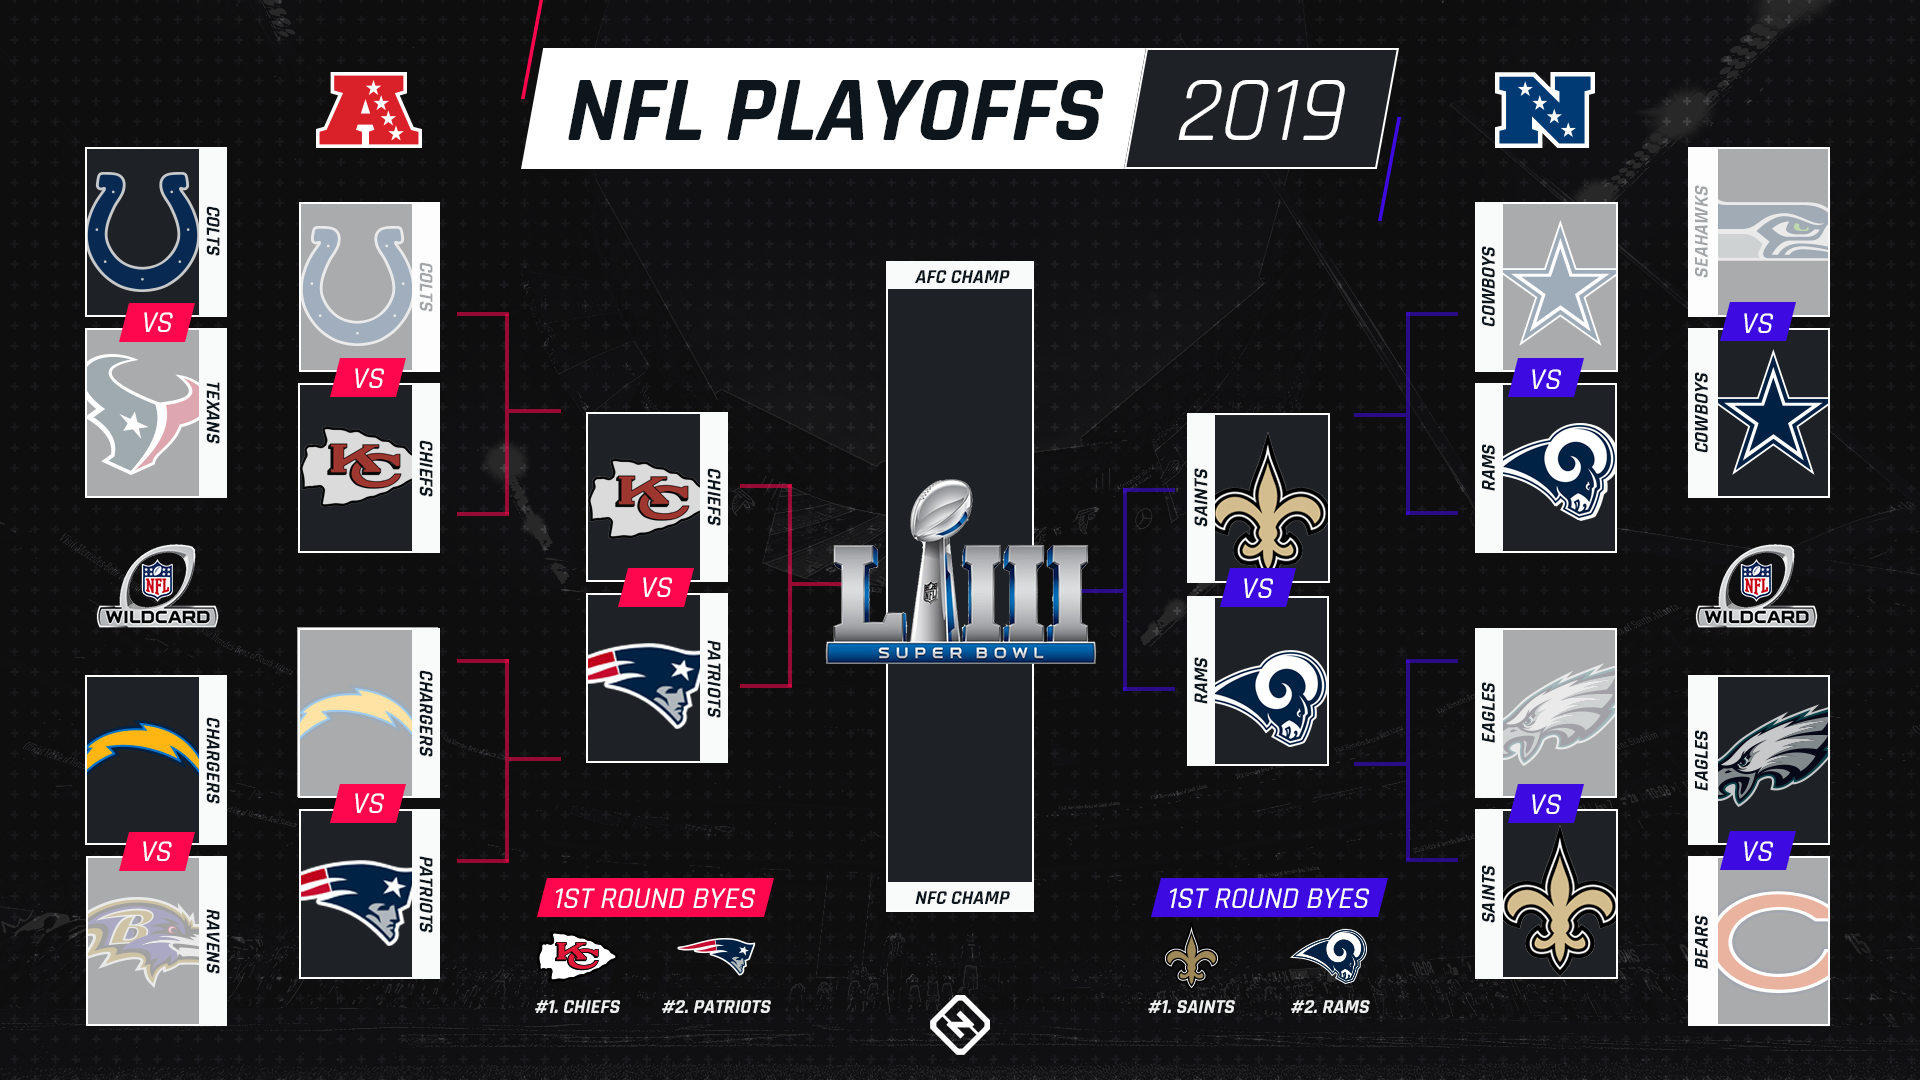 Nfl Playoff Schedule Kickoff Times Tv Channels For Afc Nfc Championship Games Sporting News